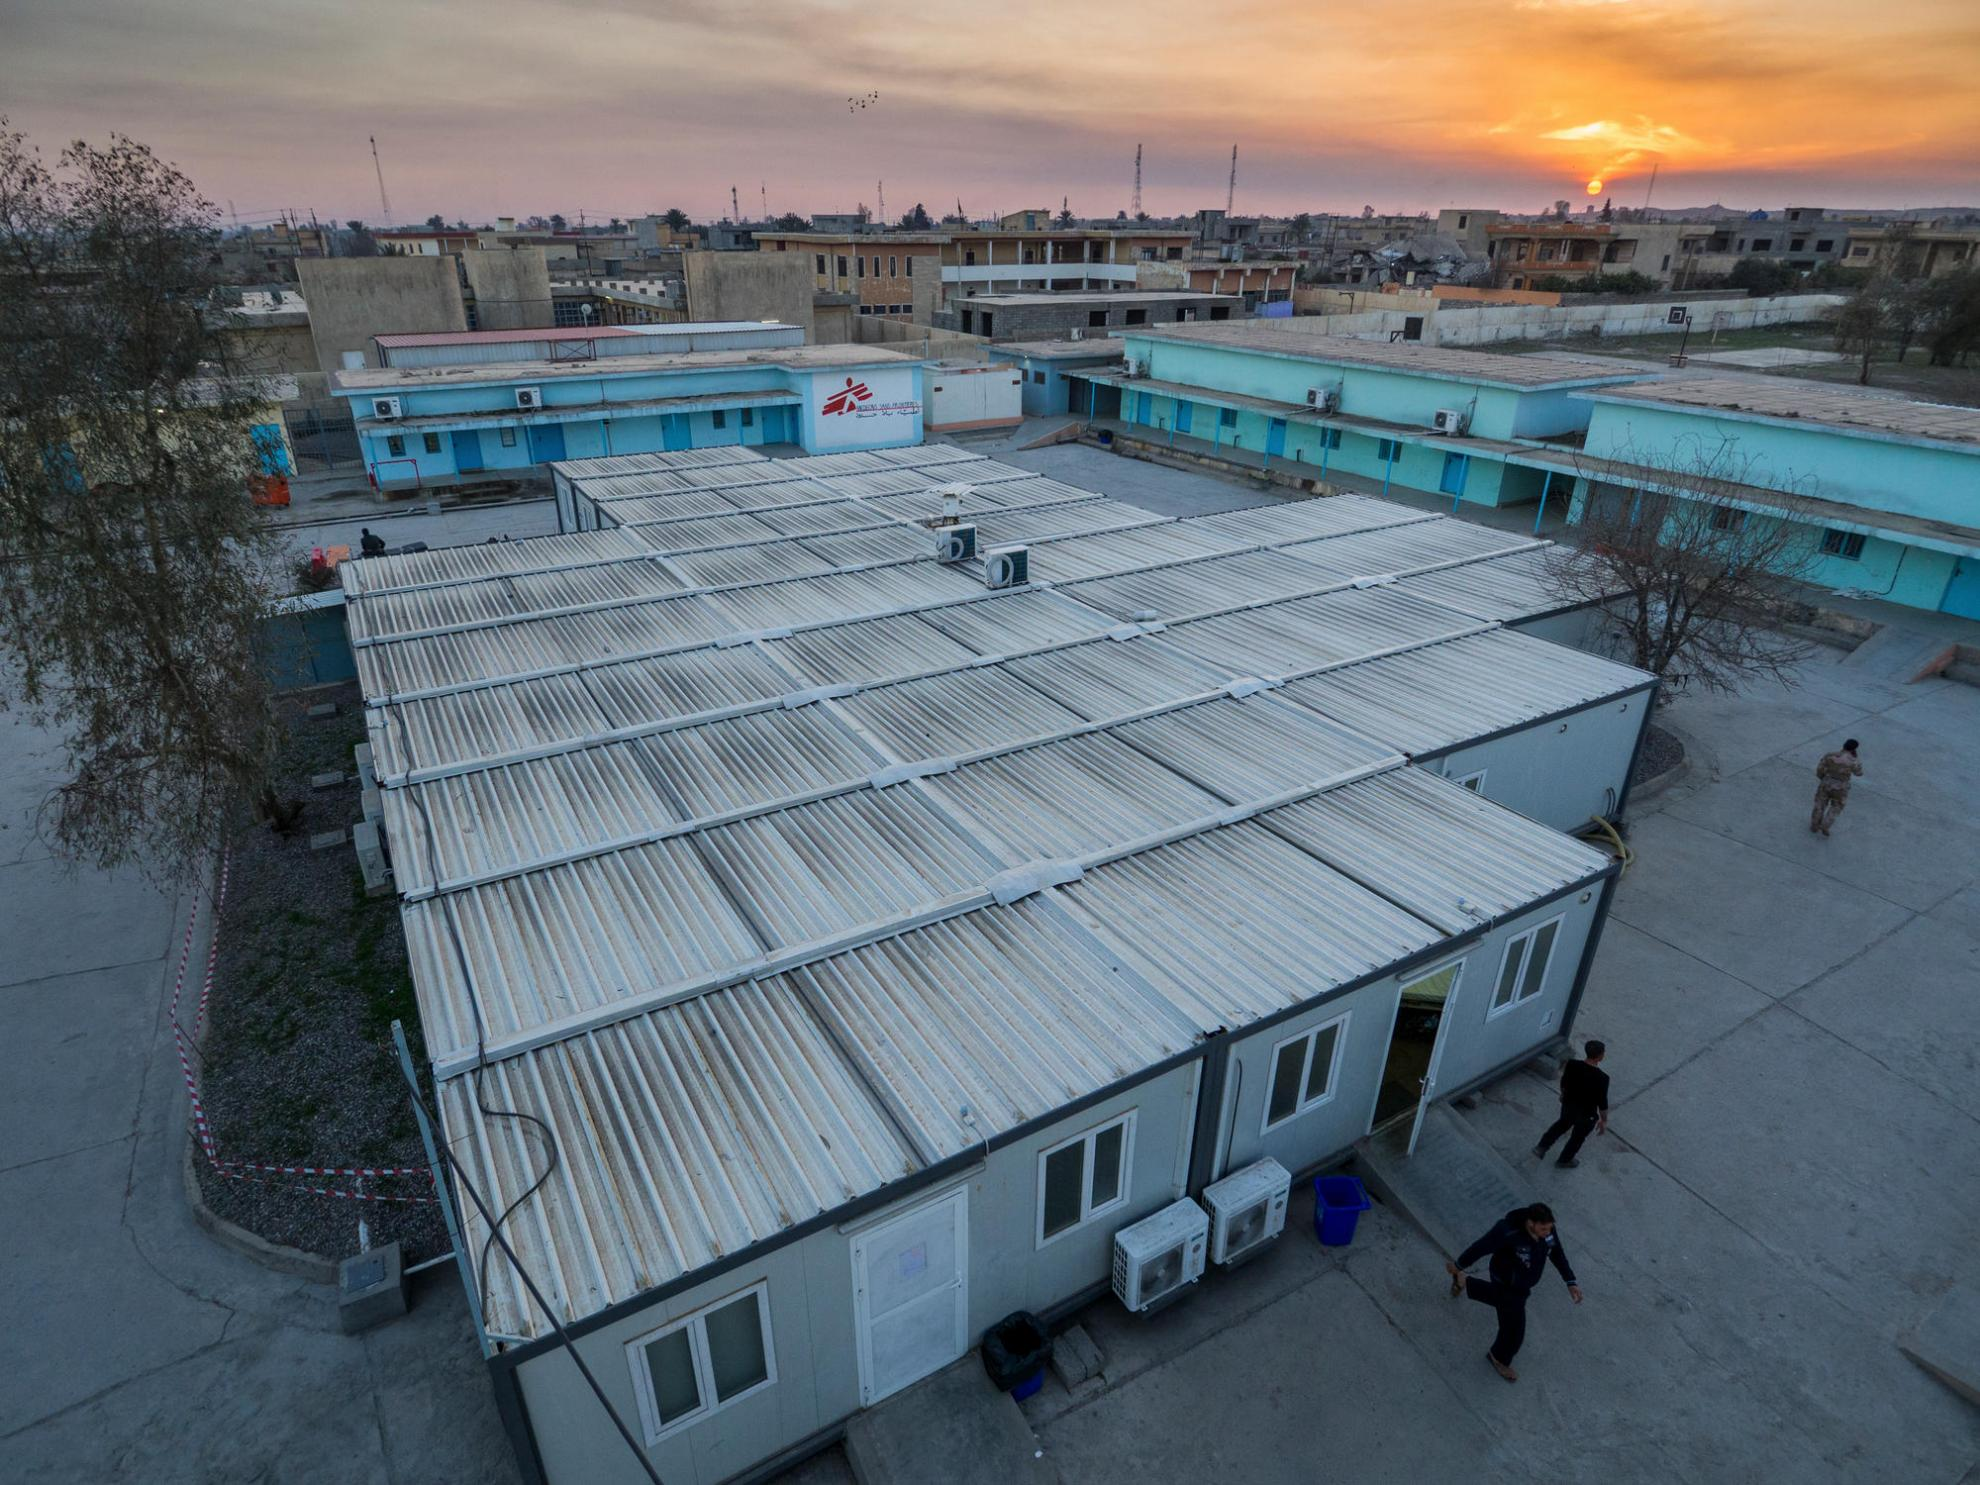 MSF's hospital at Al Qayyarah in Iraq